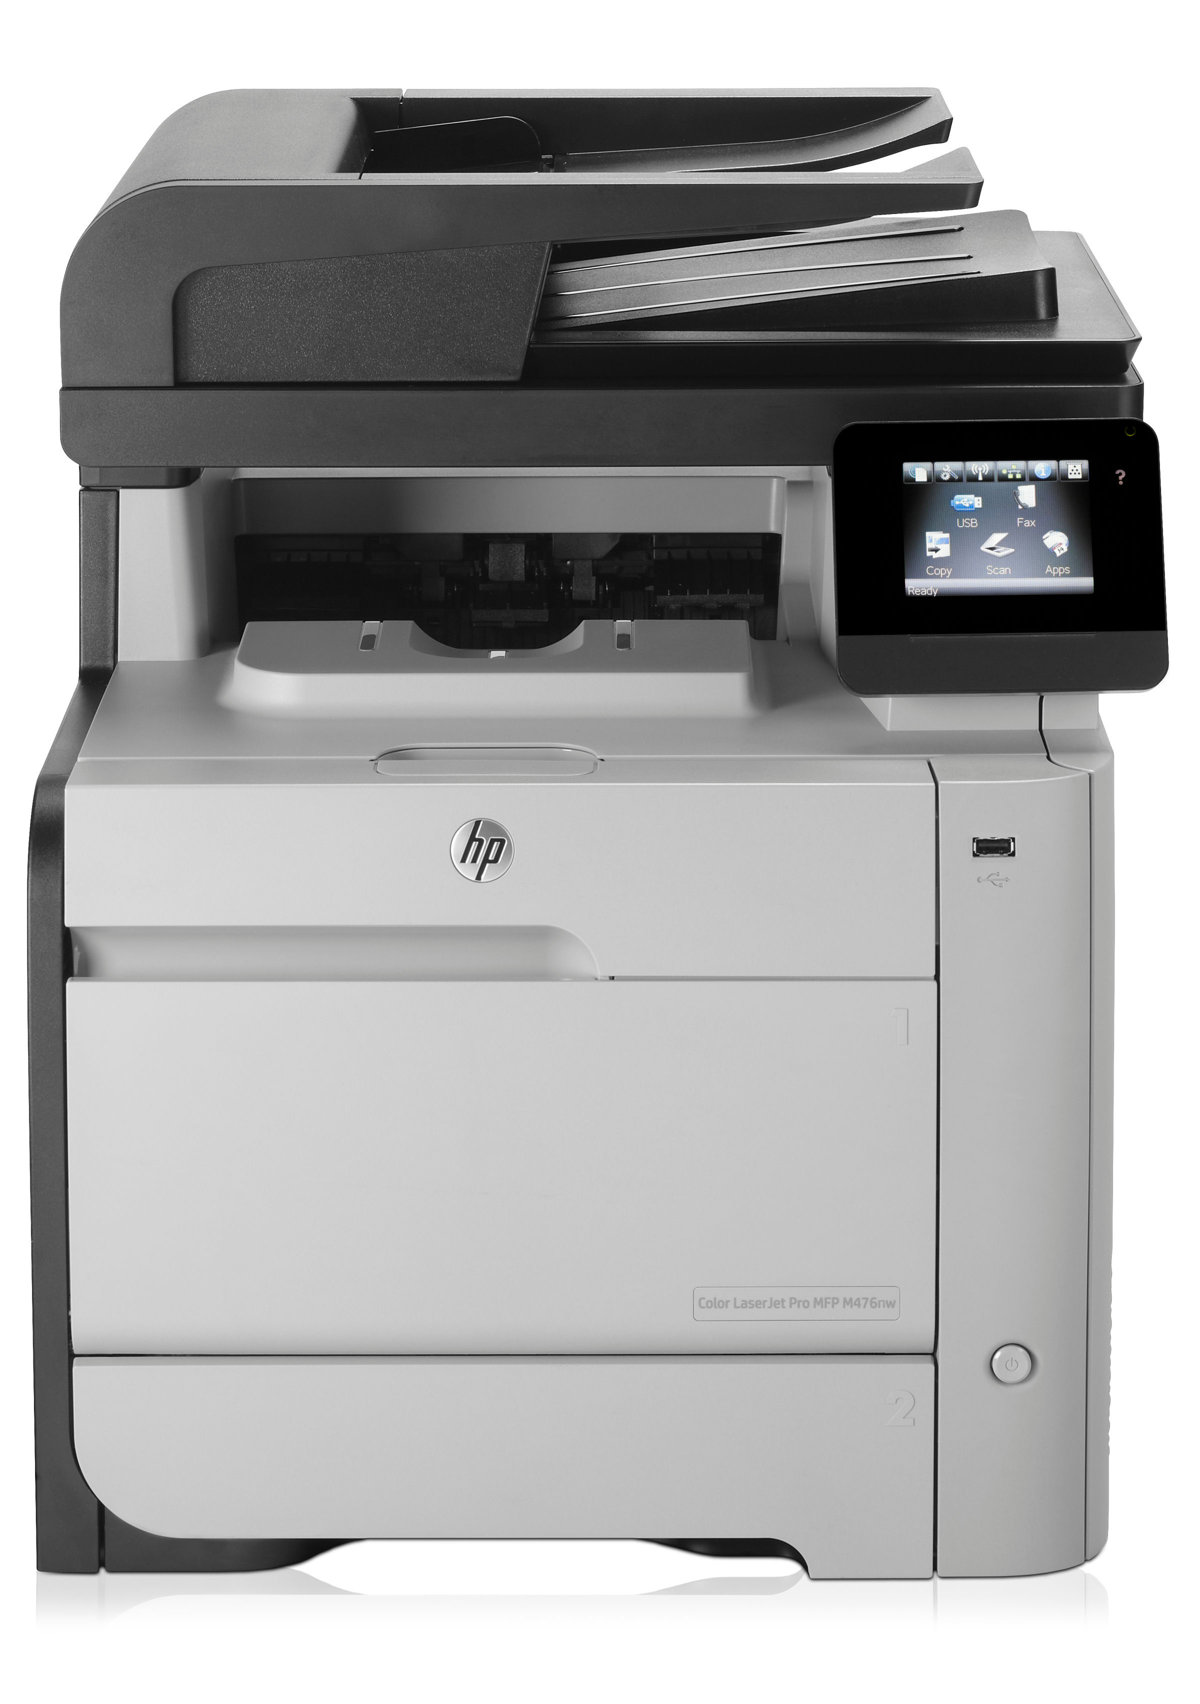 HP LaserJet Pro M476nw Wireless Color Multifunction All In One Printer  Copier Scanner Fax by Office Depot & OfficeMax